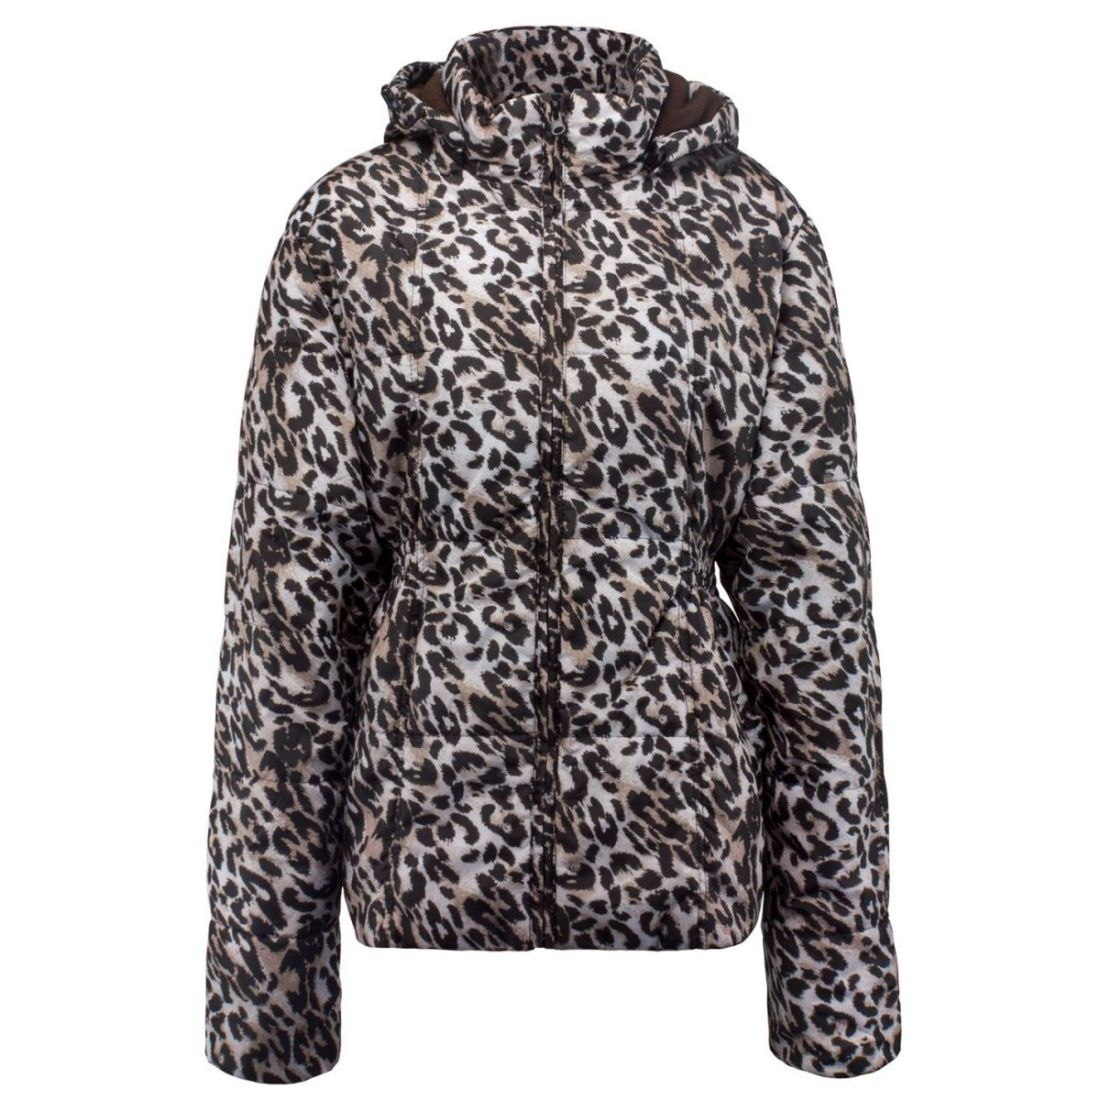 Details about Lee Cooper Womens Leopard Print Jacket Padded Coat Top High  Neck Lightweight 7a1743882d